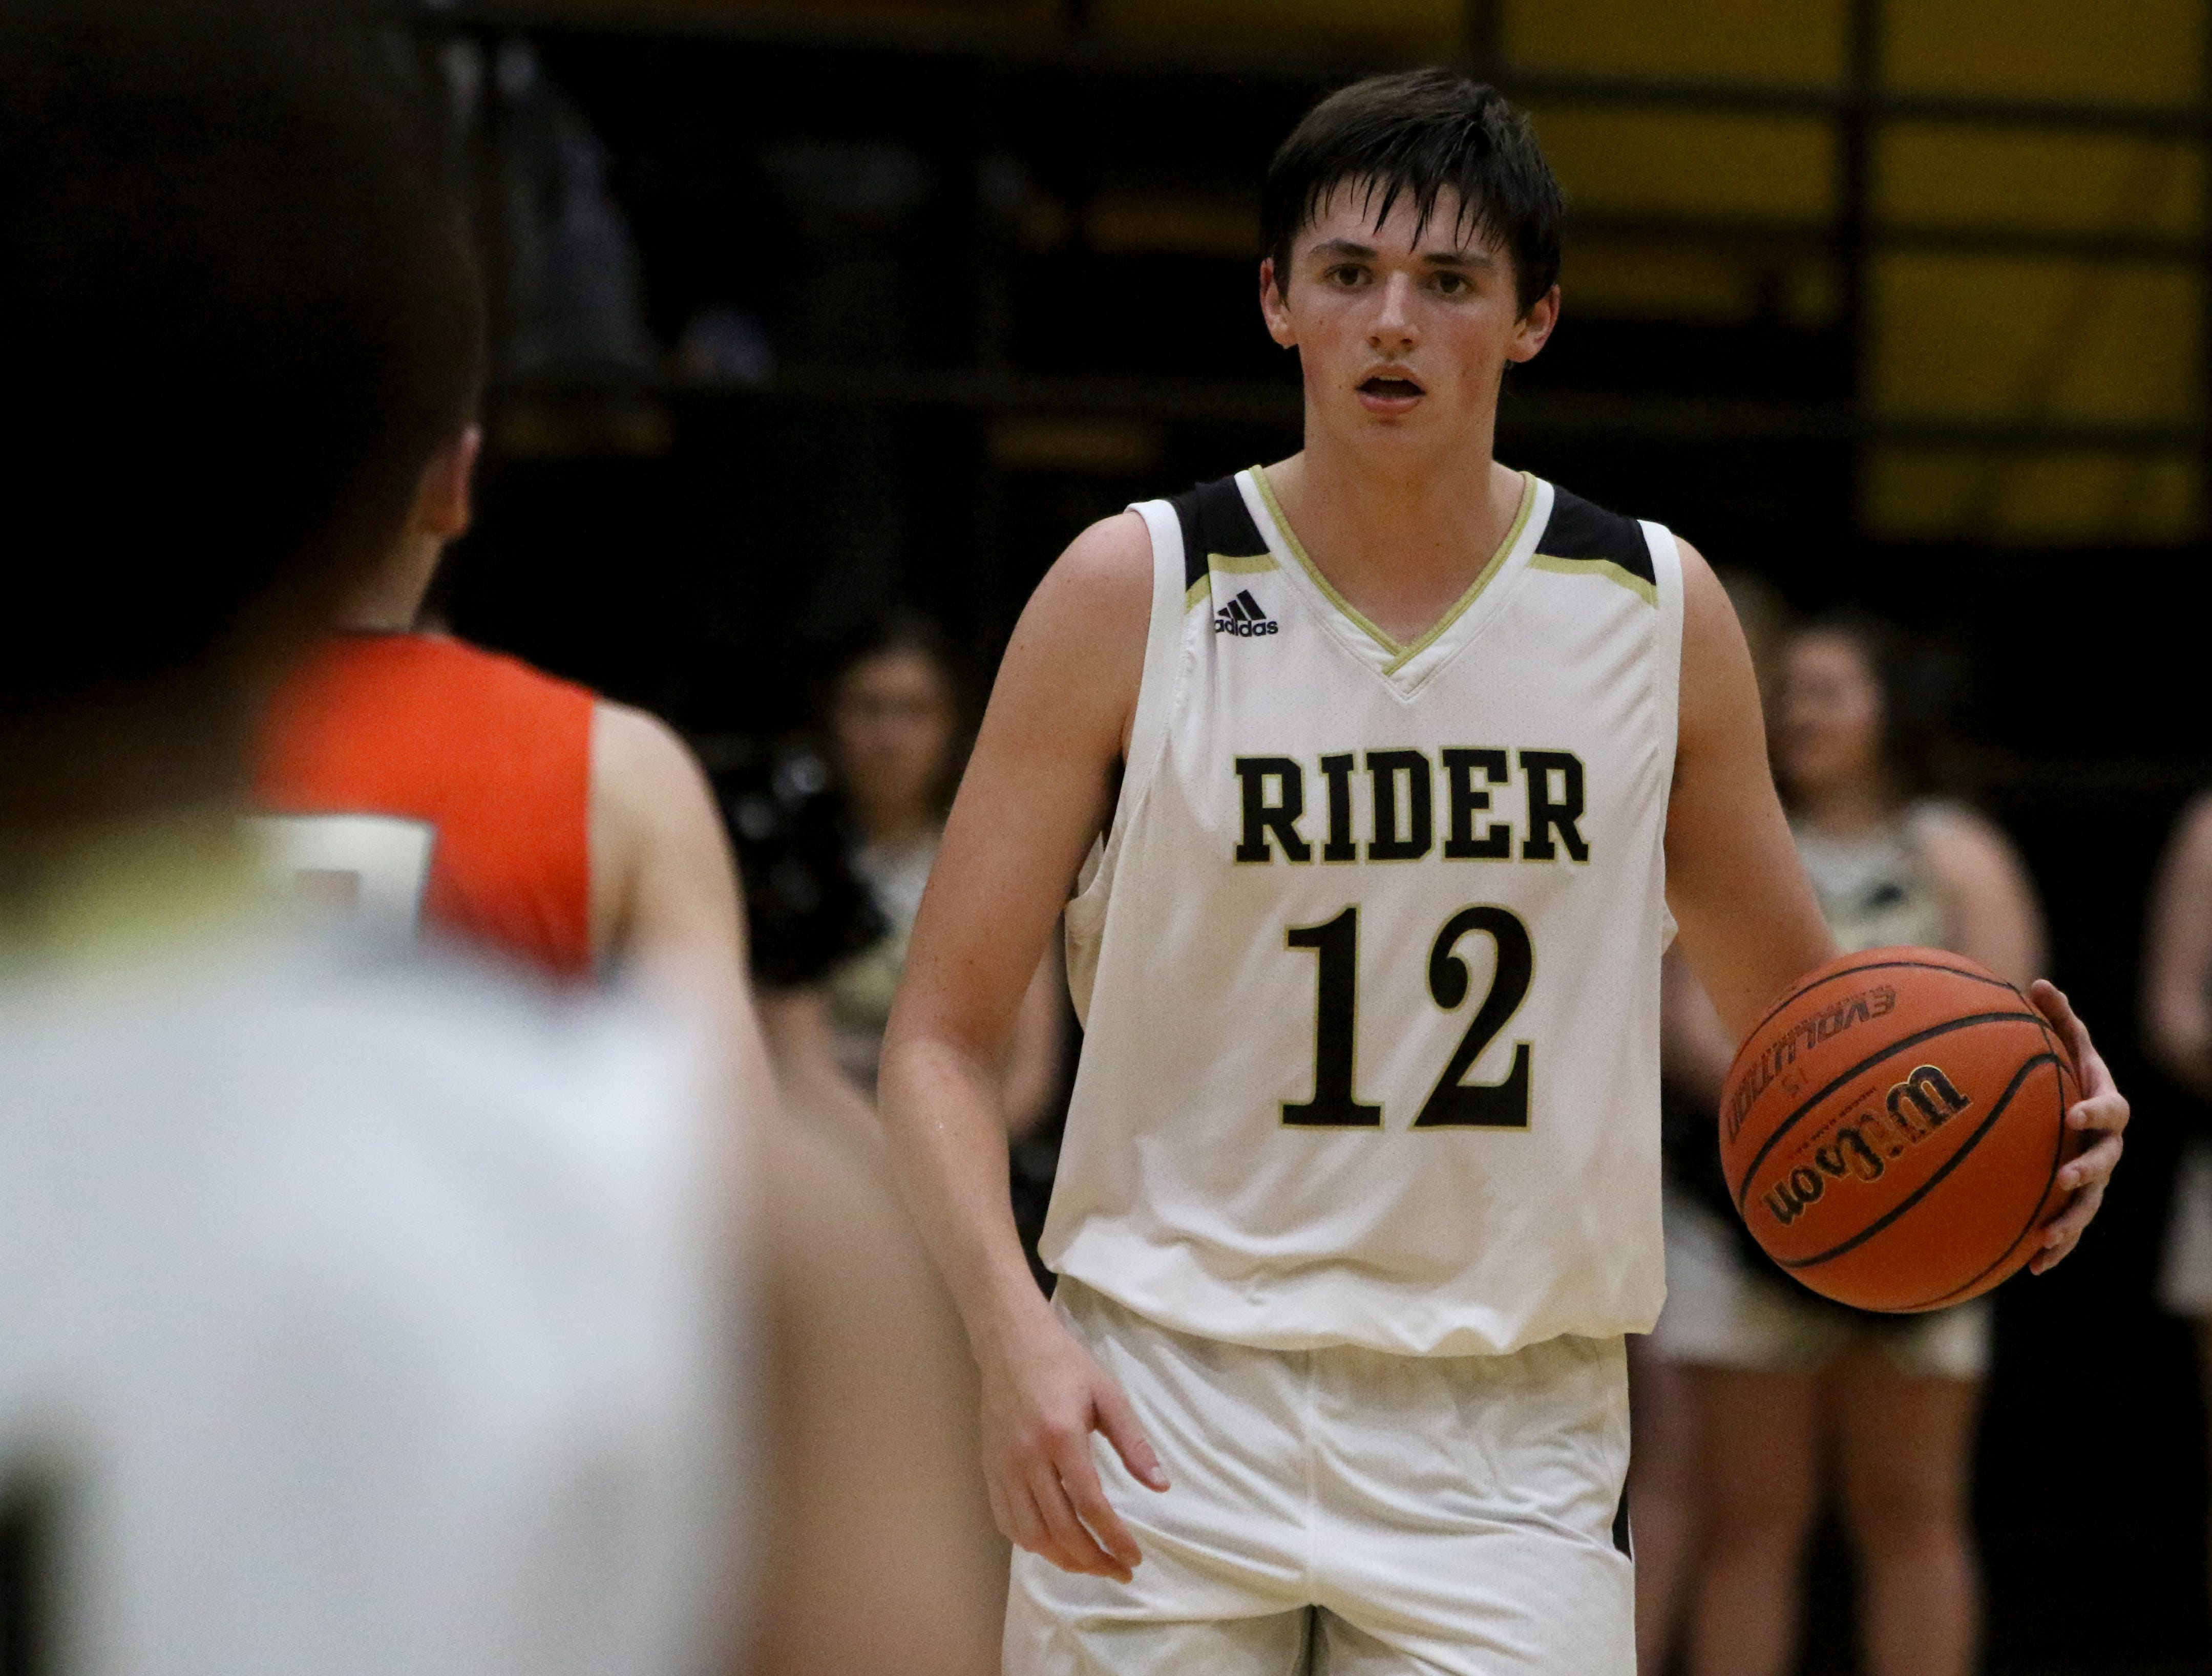 Rider's Ty Caswell dribbles in the game against Aledo Tuesday, Feb. 5, 2019, at Rider. The Raiders defeated the Bearcats 64-51.